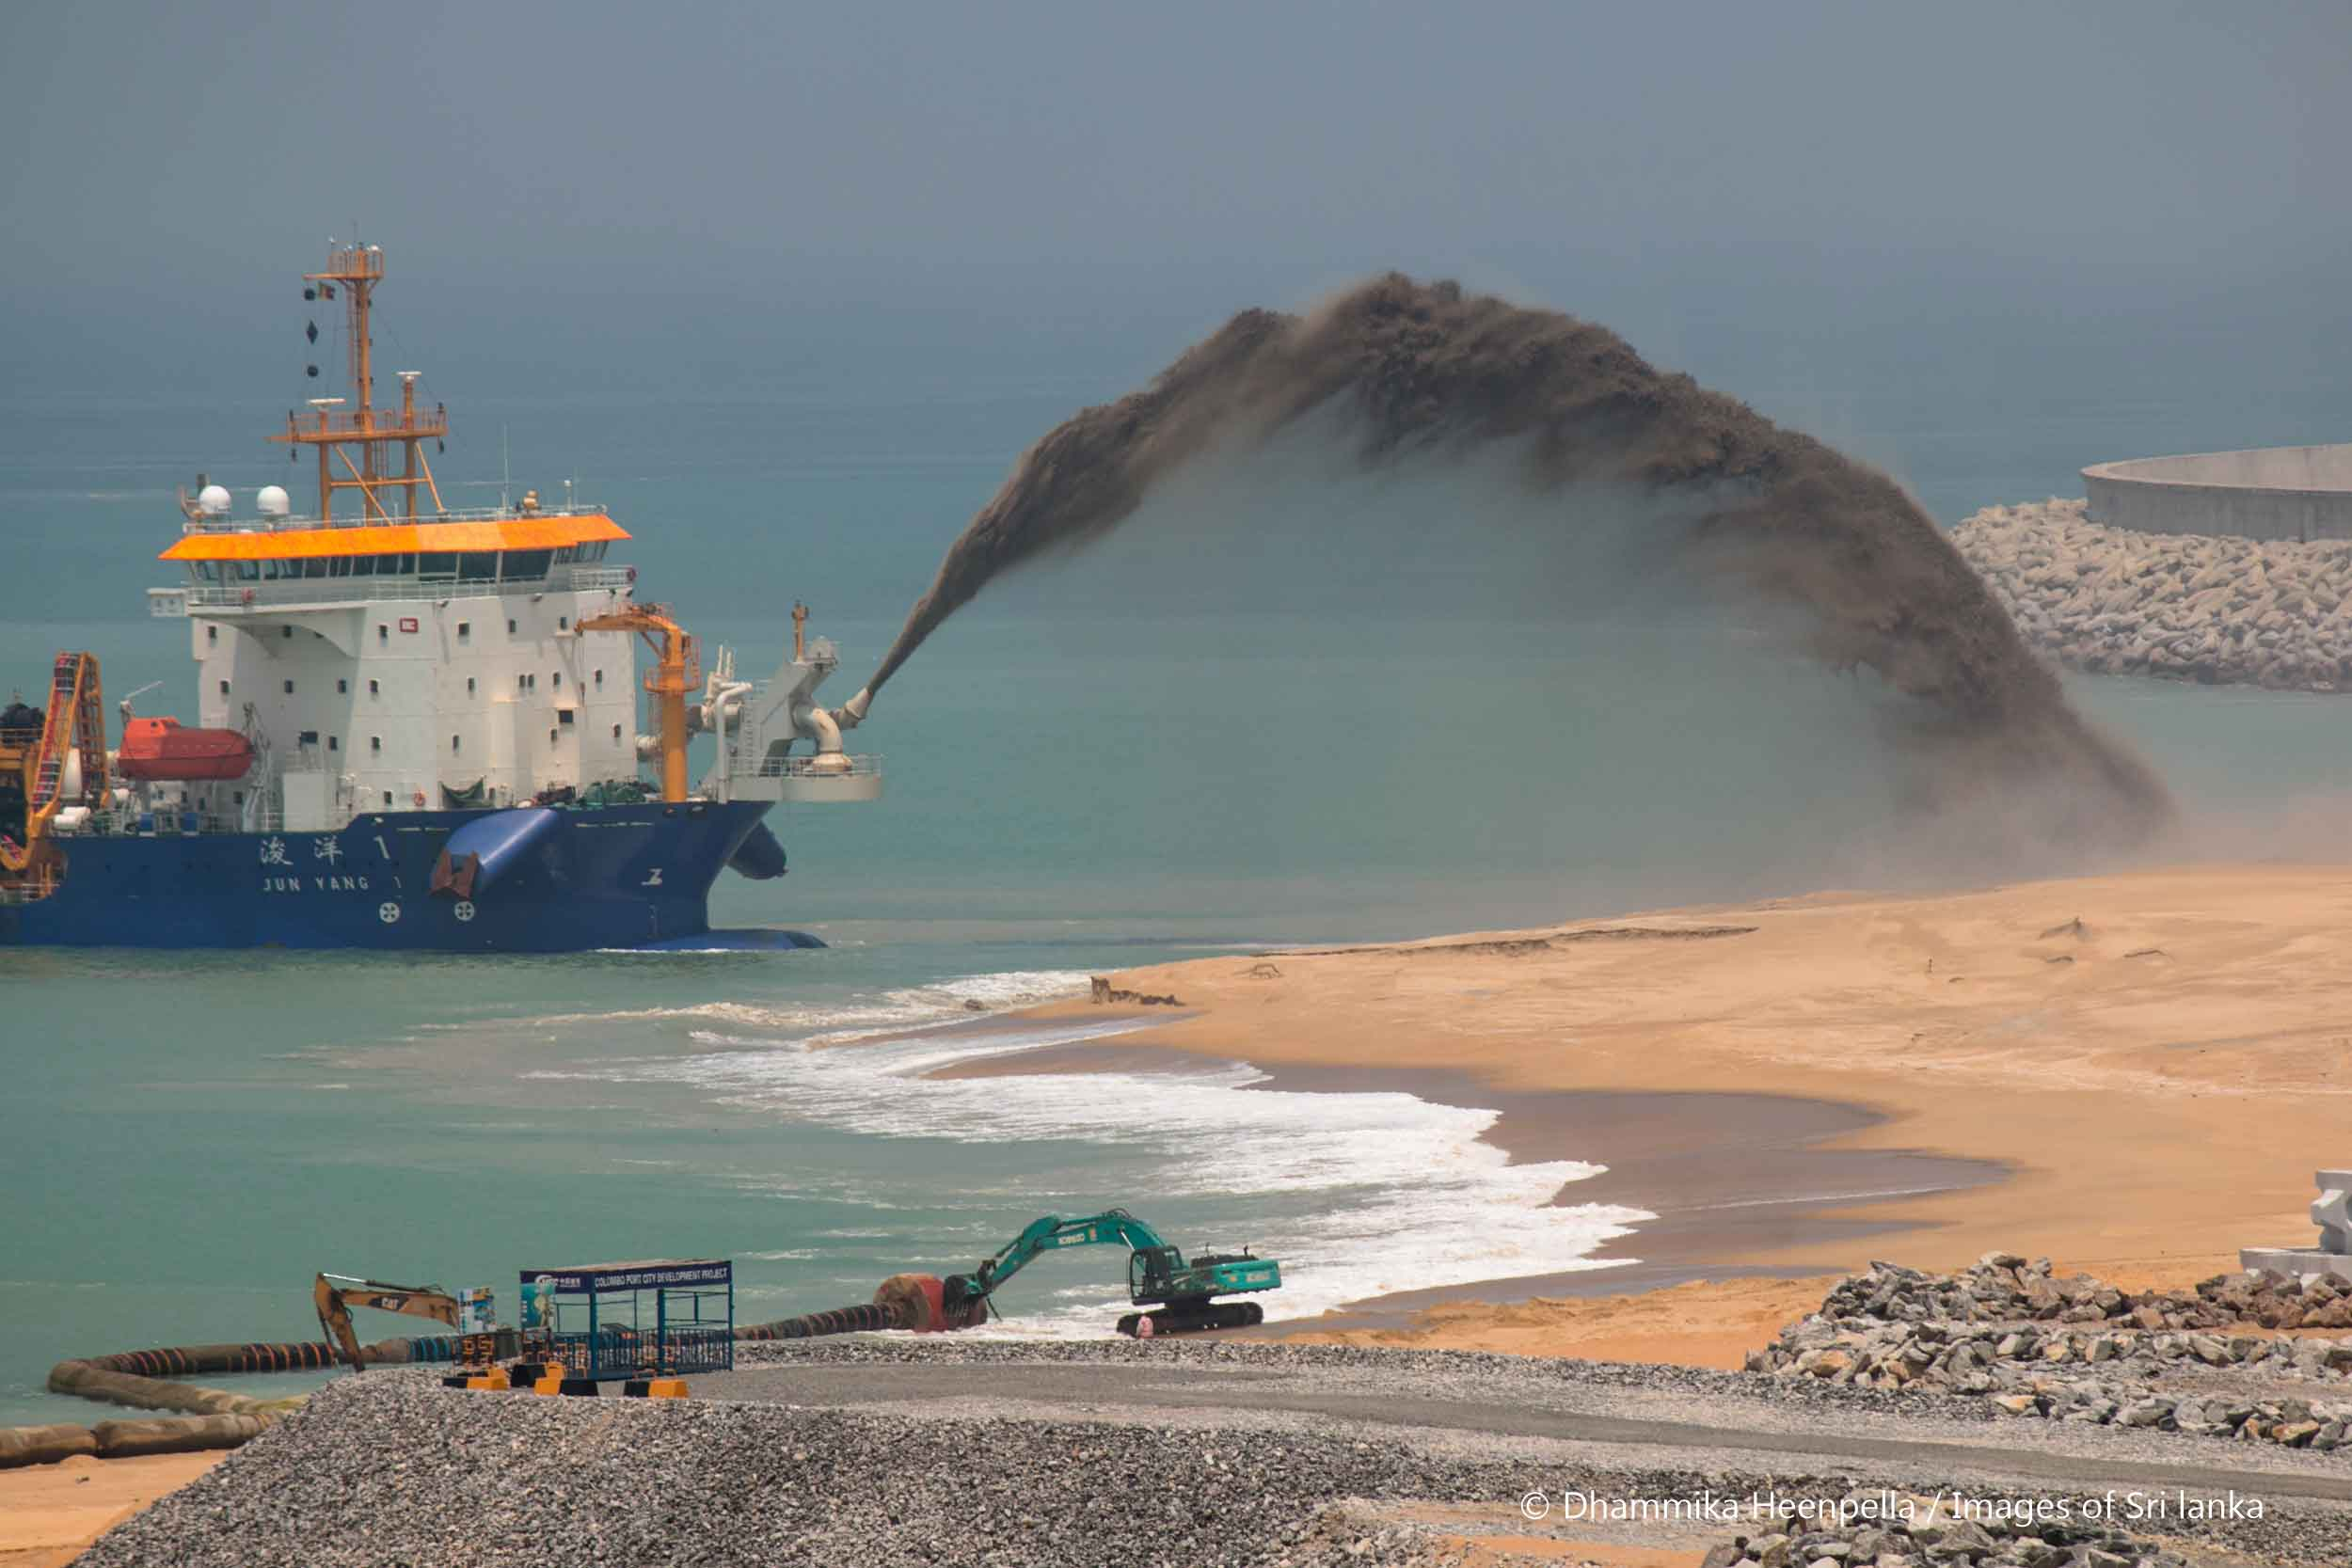 New land emerges from the sea at the US$1.4 billion Chinese-backed Port City project near Sri Lanka's main port, part of Beijing's ambitious global expansion of investment and aid.